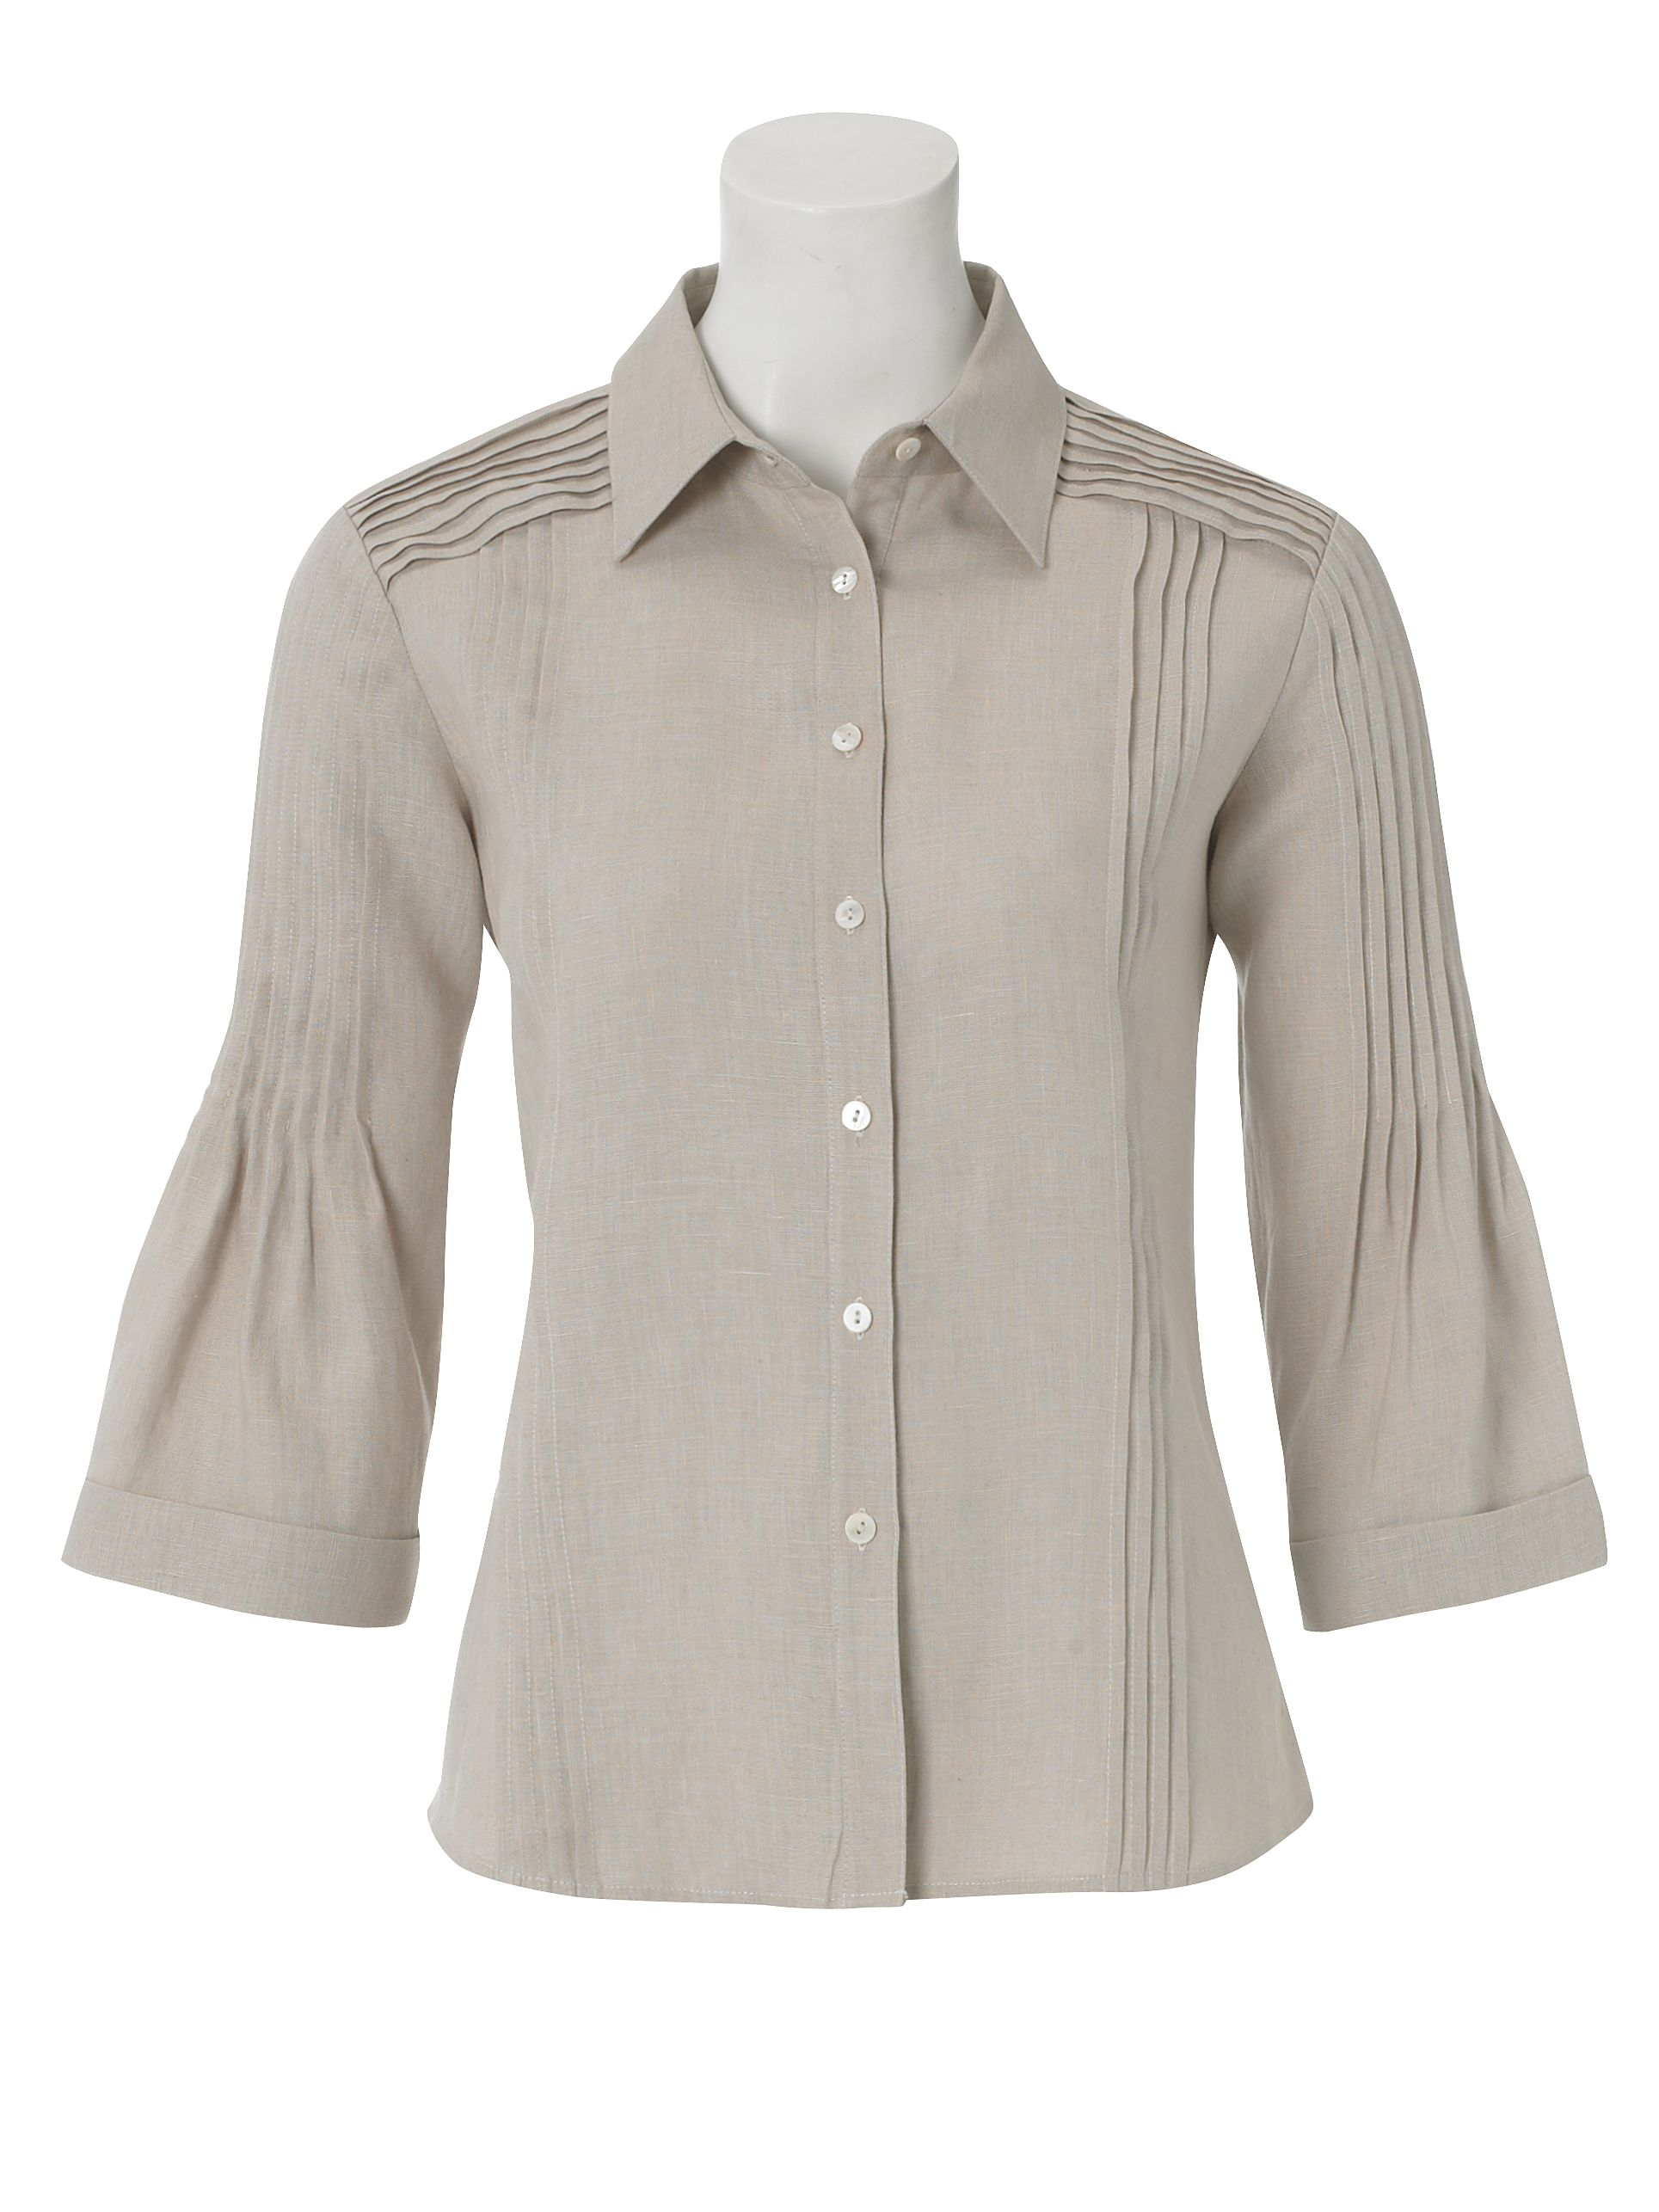 Paul Costelloe Pintuck detail blouse Beige product image